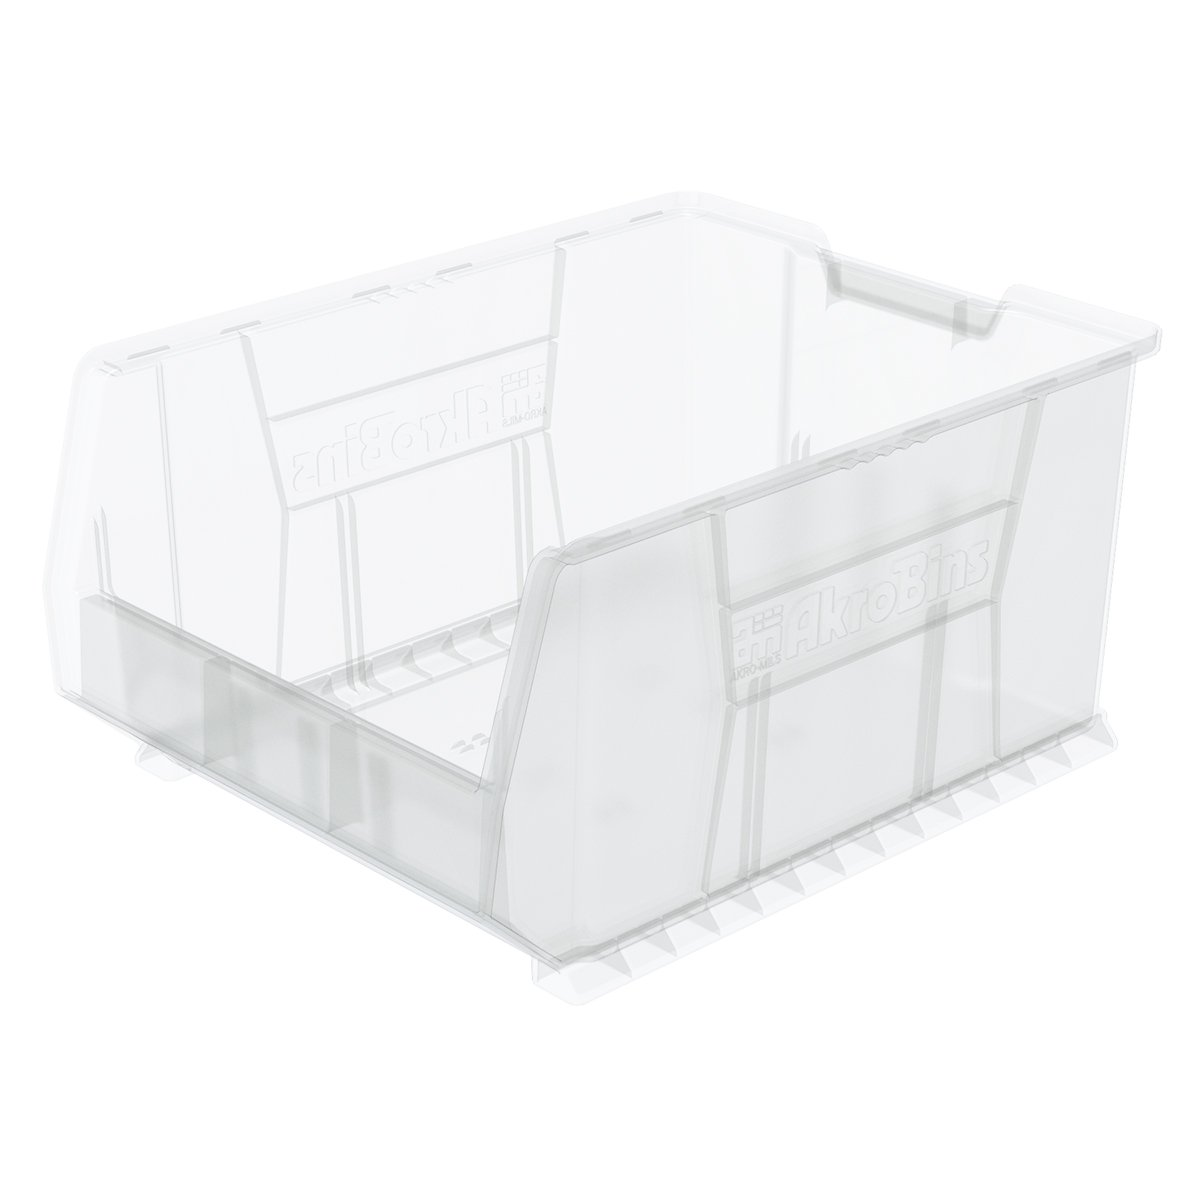 Akro-Mils 30289 24-Inch D by 18-Inch W by 12-Inch H Clear Super Size Plastic Stacking Storage AkroBin